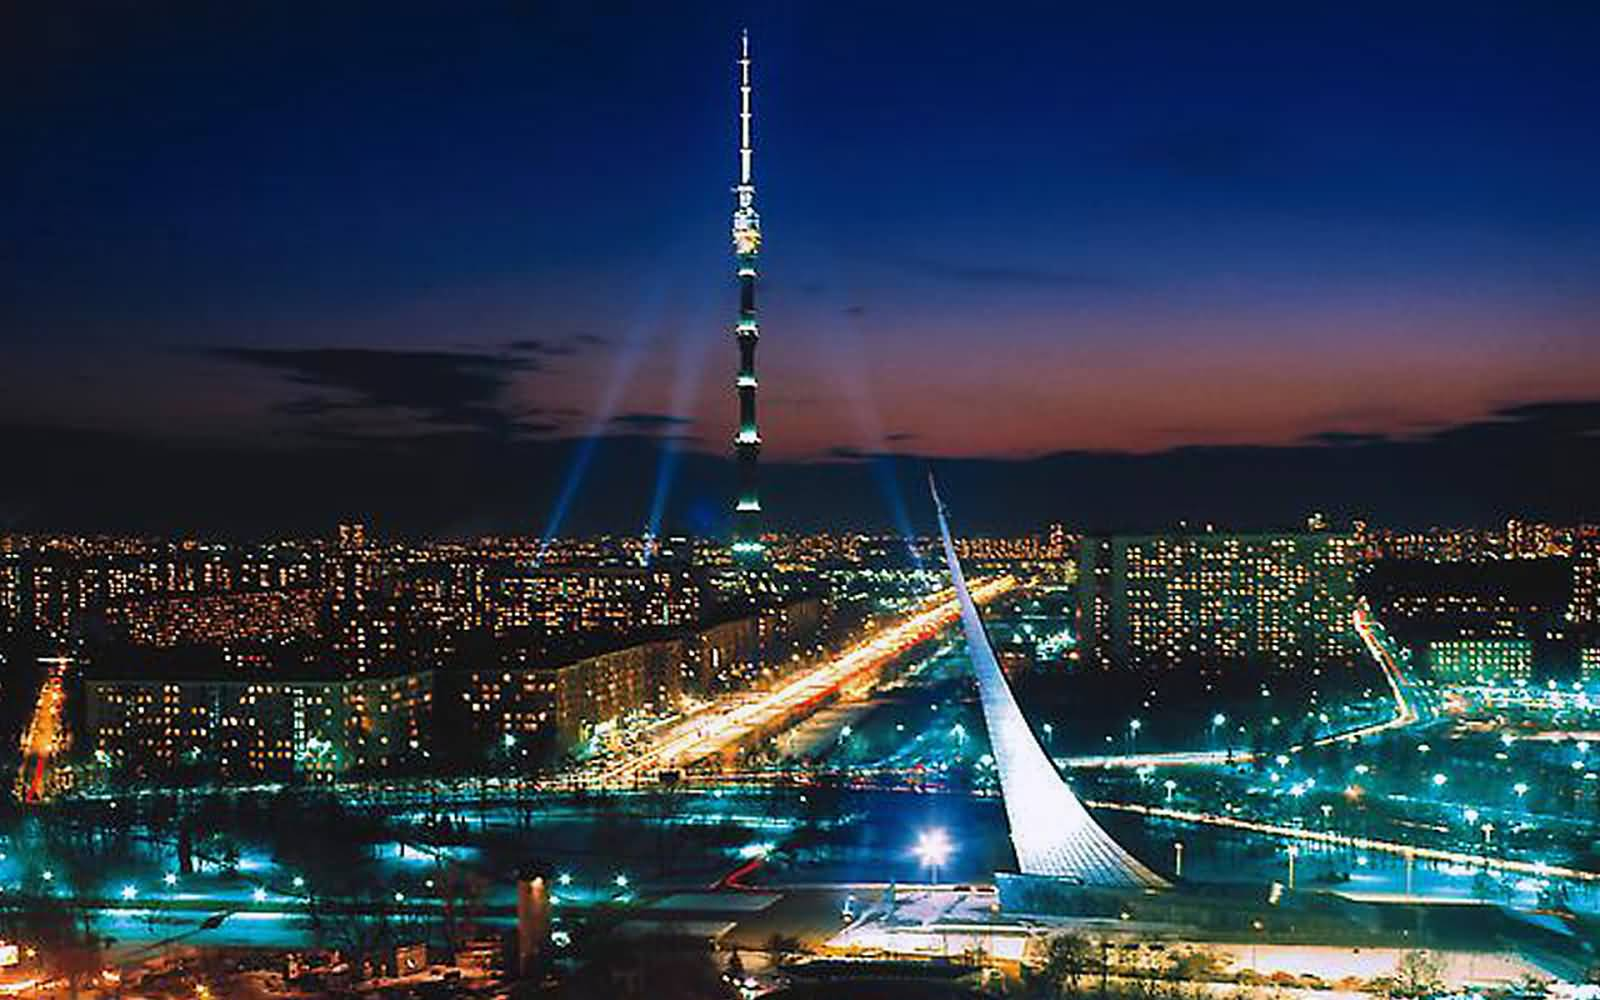 Ostankino TV Tower Moscow, Adorable Night View Of The Ostankino Tower With Moscow City